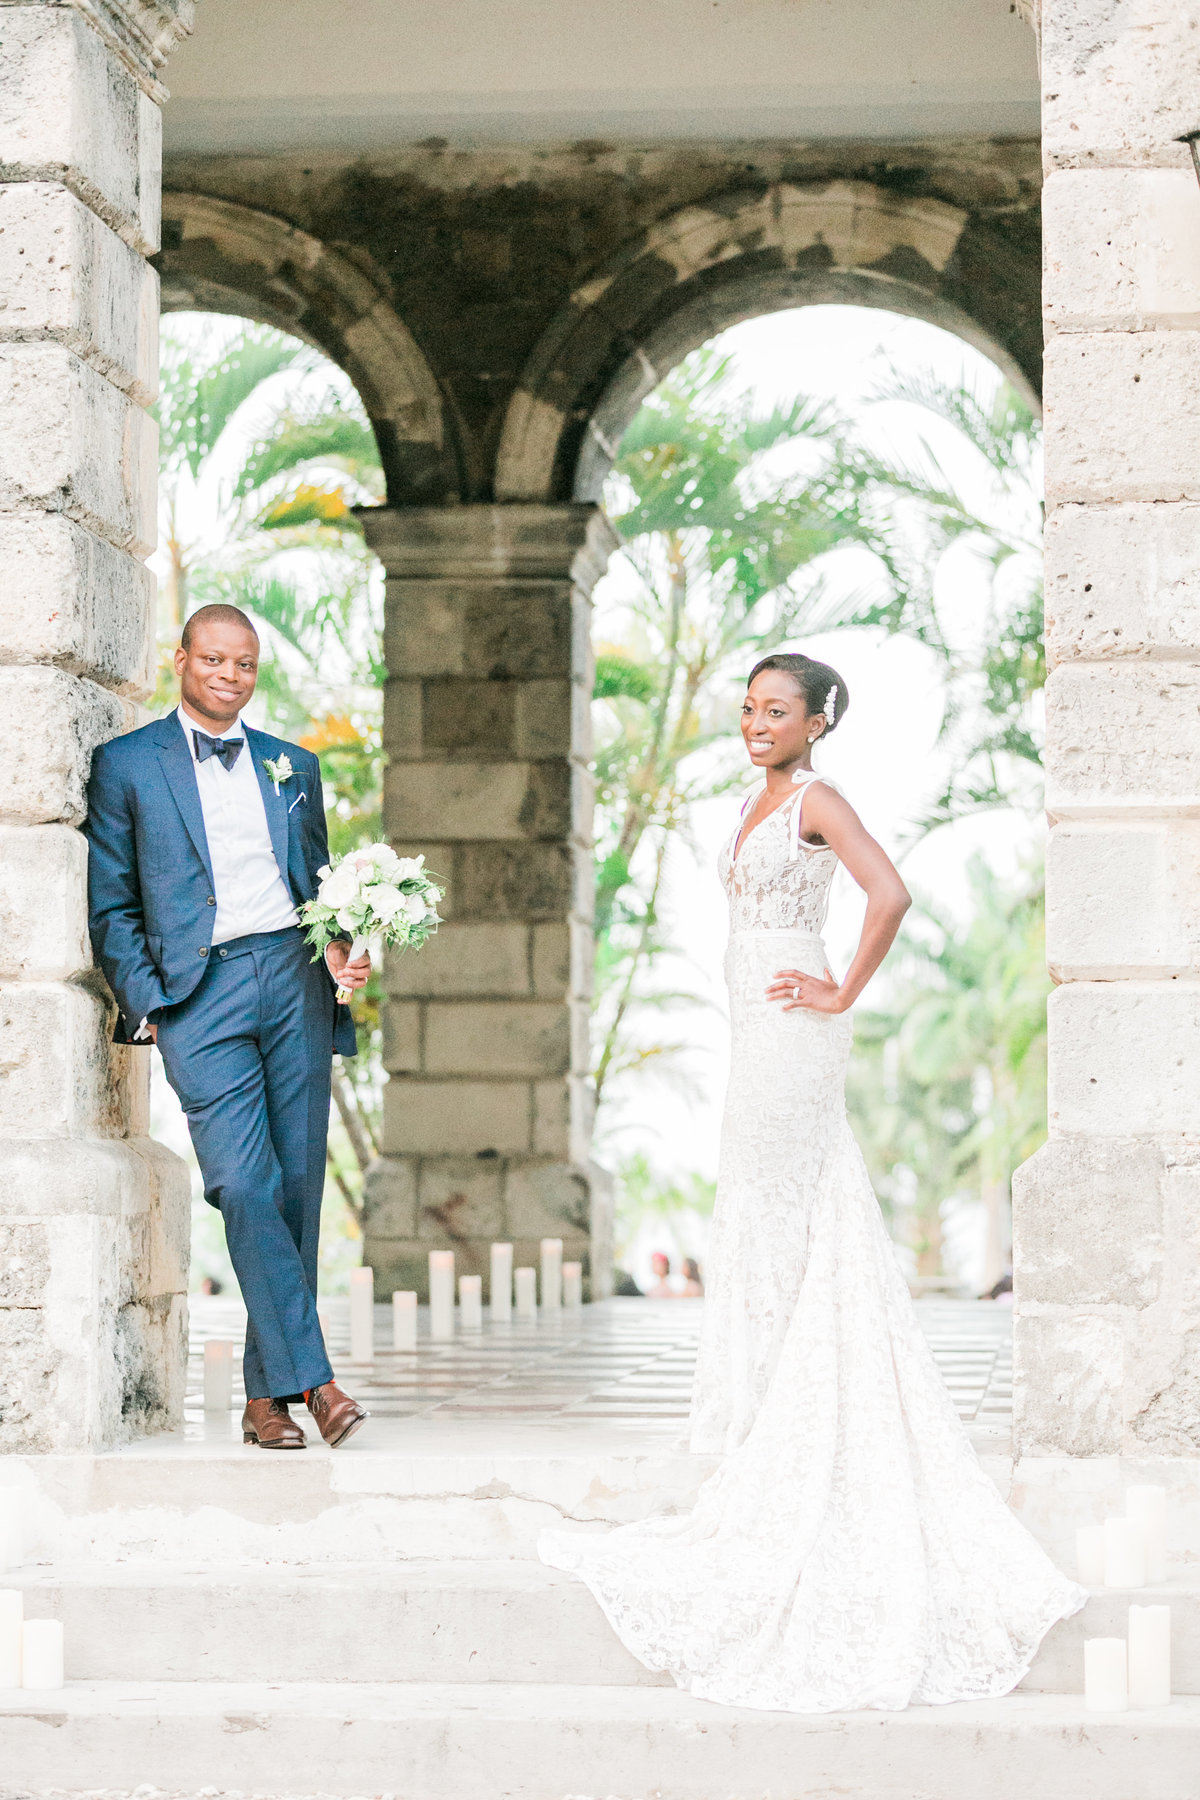 Bridal portraits at Codrington College Barbados